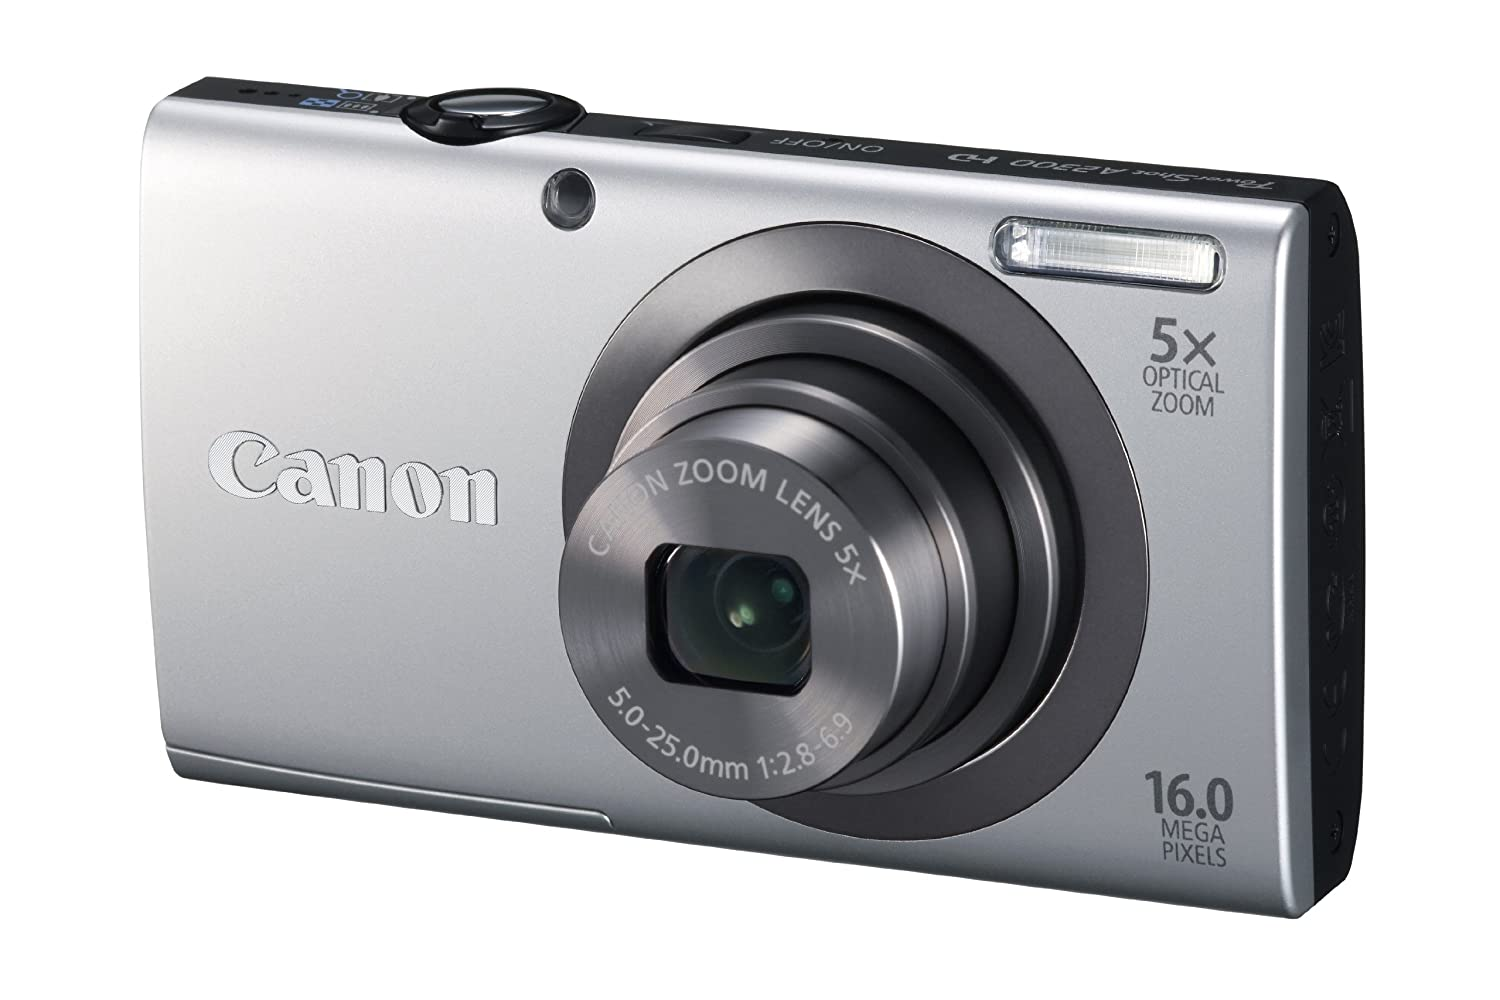 592a738ee Amazon.com : Canon PowerShot A2300 16.0 MP Digital Camera with 5x Optical  Zoom (Silver) : Point And Shoot Digital Cameras : Camera & Photo